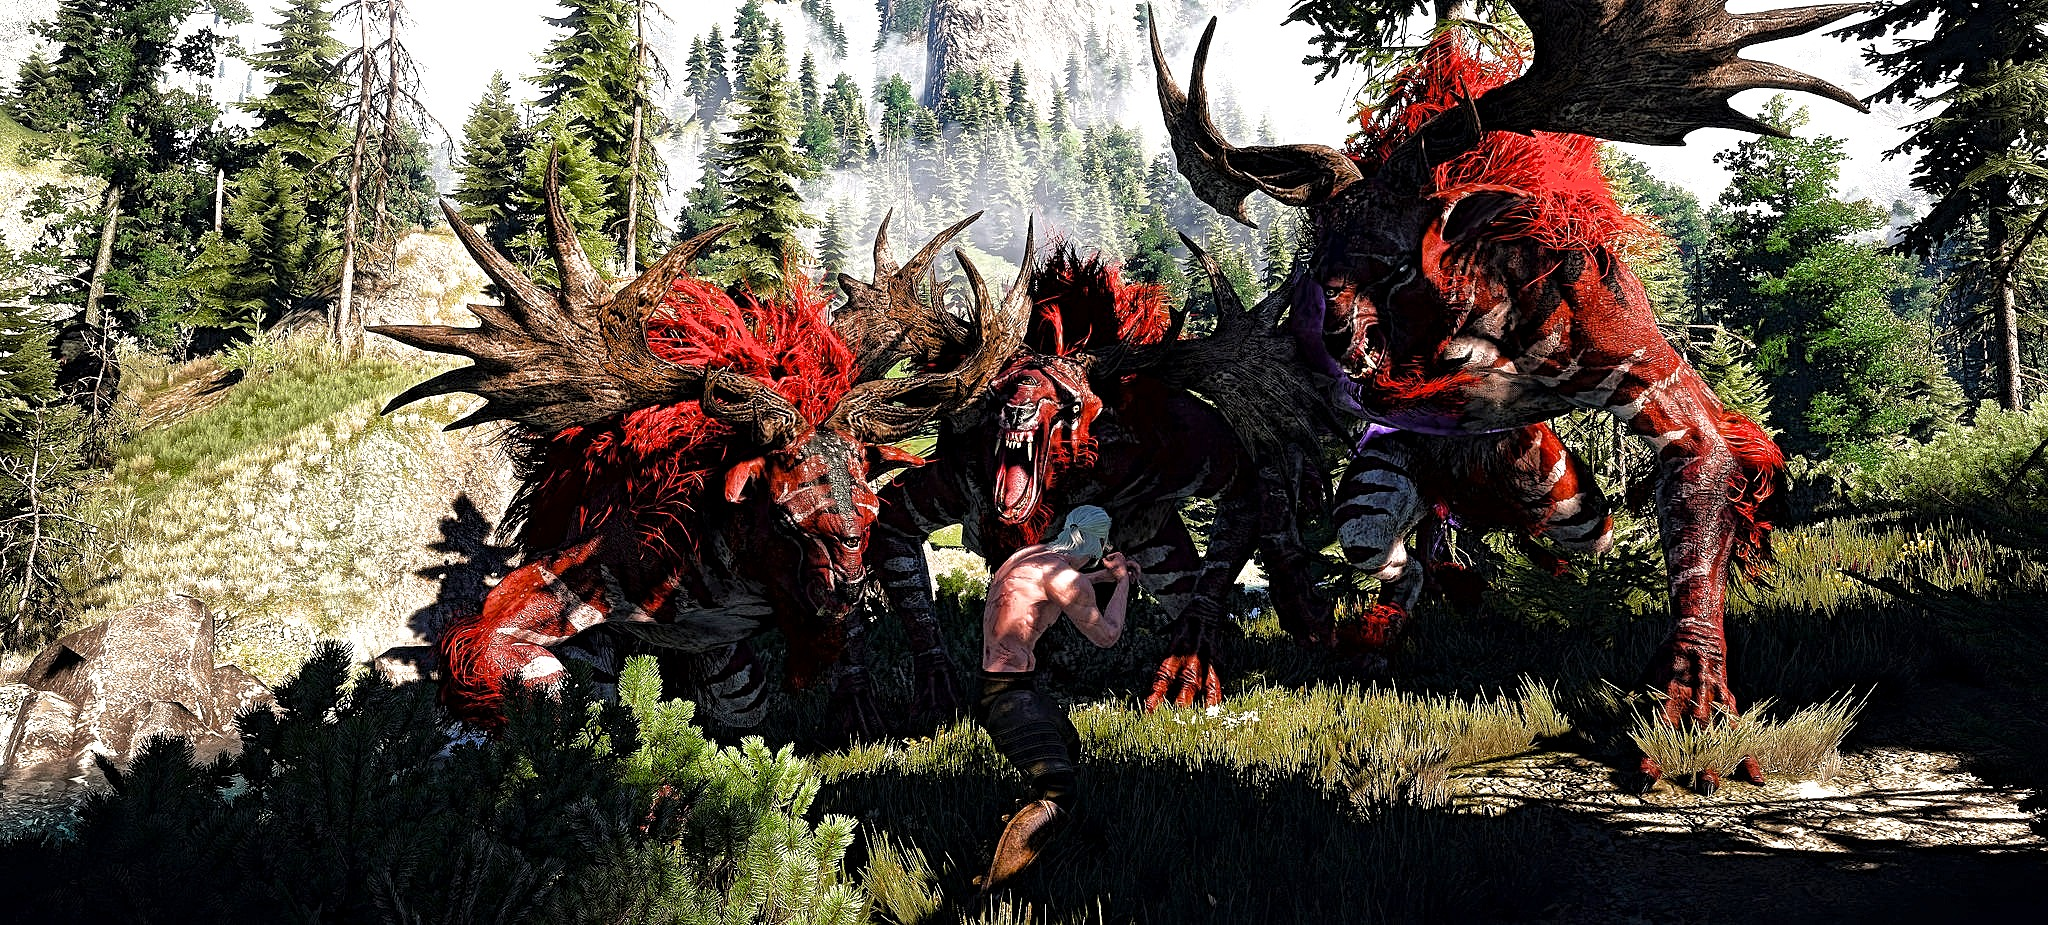 33644772TFGH23d (1).jpg - Witcher 3: Wild Hunt, the